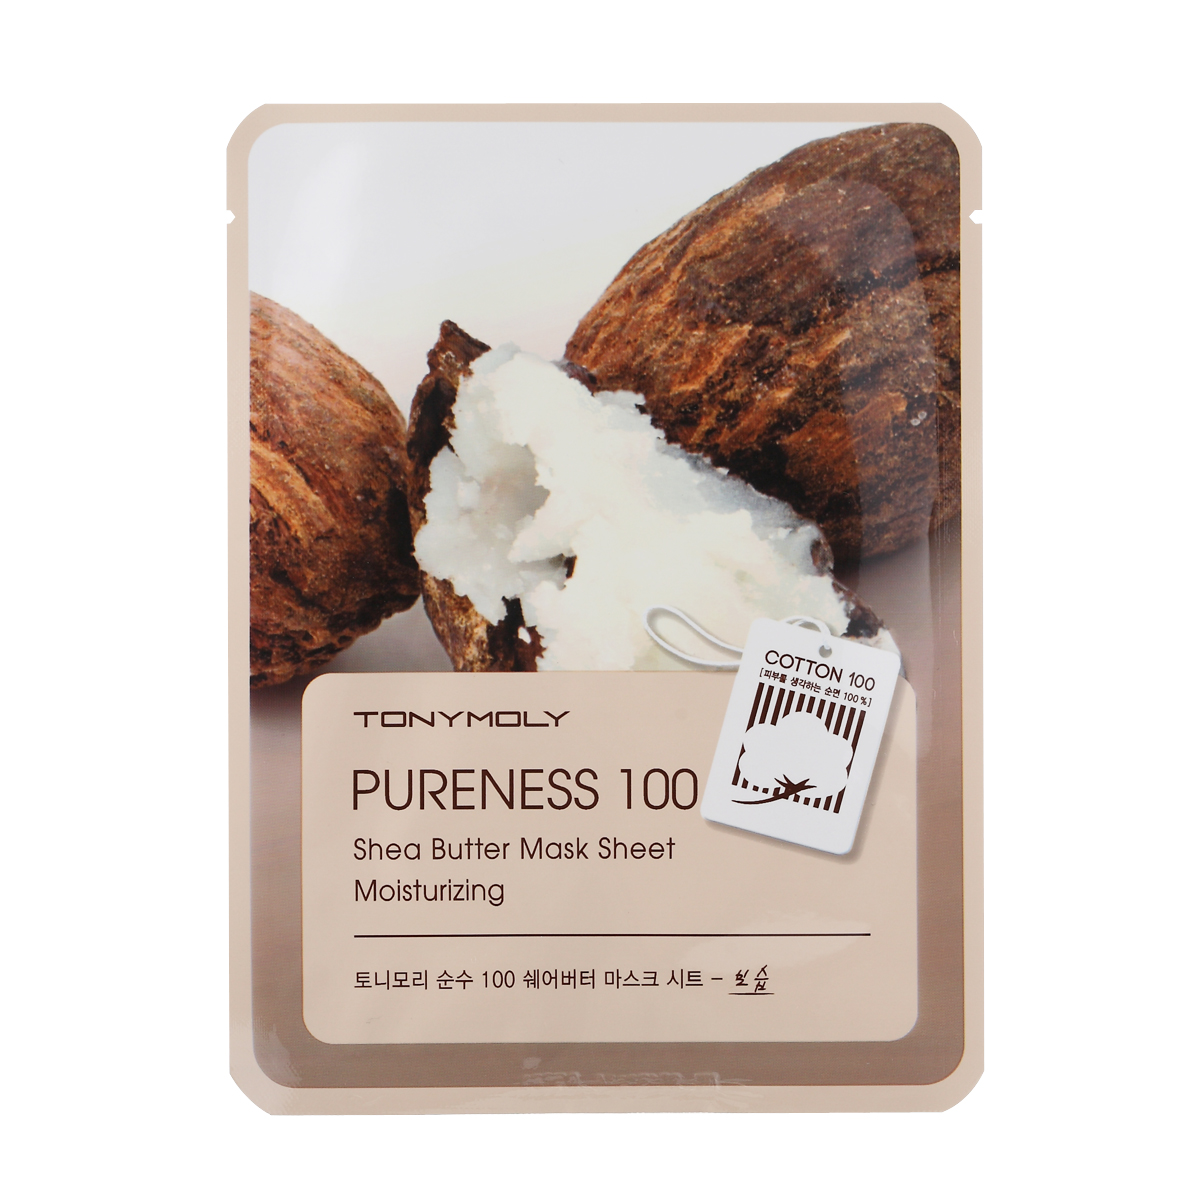 TonyMoly Тканевая маска с экстрактом масла ши Pureness 100 Shea Butter Mask Sheet, 21 мл тканевая маска для лица с экстрактом масла ши nature source cell mask shea butter 25 гр